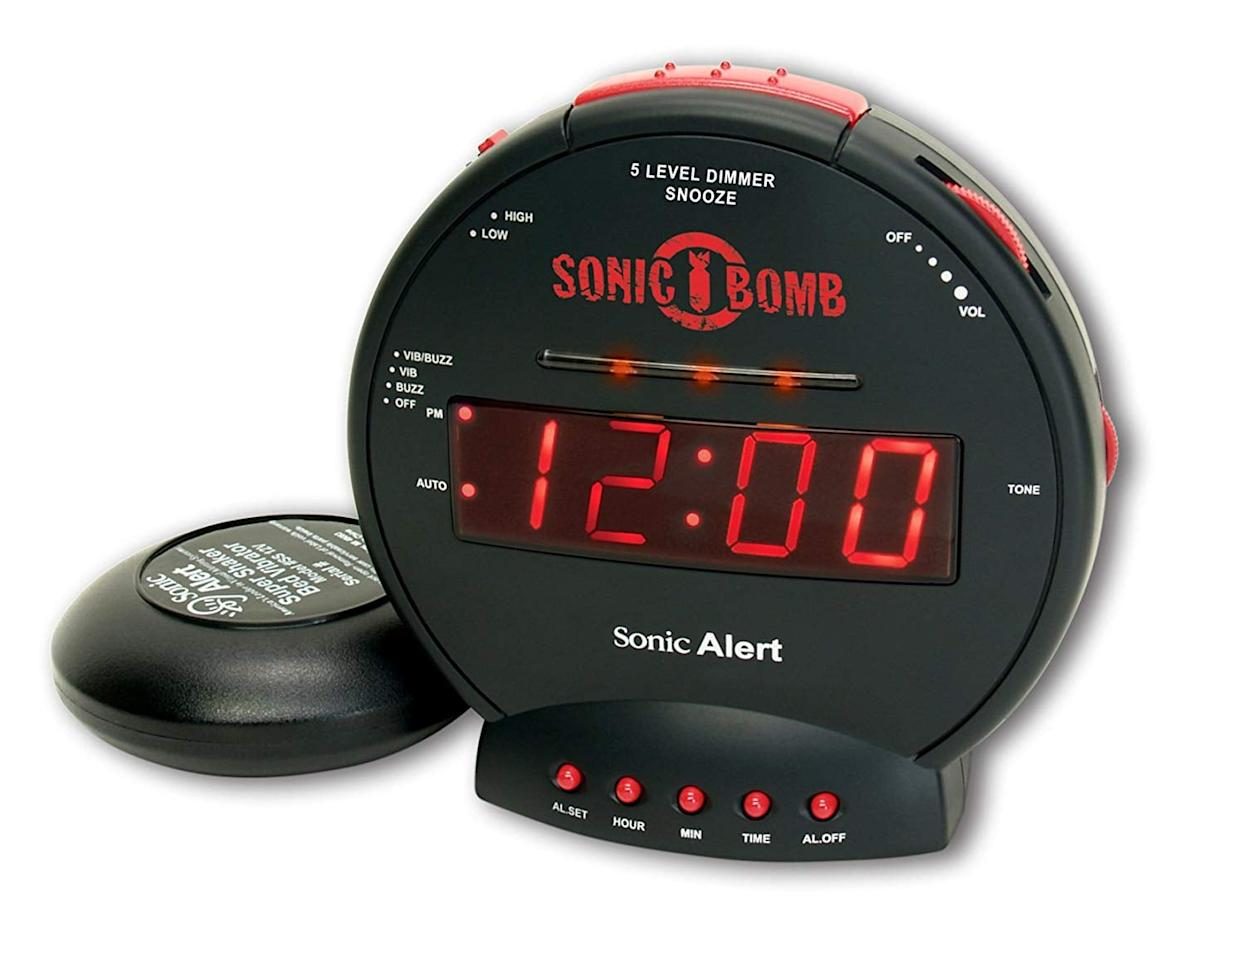 """<p>If you have trouble waking up, this <a href=""""https://www.popsugar.com/buy/Sonic-Bomb-Extra-Loud-Dual-Alarm-Clock-477579?p_name=Sonic%20Bomb%20Extra-Loud%20Dual%20Alarm%20Clock&retailer=amazon.com&pid=477579&price=33&evar1=savvy%3Aus&evar9=46477509&evar98=https%3A%2F%2Fwww.popsugar.com%2Fphoto-gallery%2F46477509%2Fimage%2F46477721%2FSonic-Bomb-Extra-Loud-Dual-Alarm-Clock&list1=shopping%2Camazon%2Cgadgets%2Ctech%20accessories&prop13=api&pdata=1"""" rel=""""nofollow"""" data-shoppable-link=""""1"""" target=""""_blank"""" class=""""ga-track"""" data-ga-category=""""Related"""" data-ga-label=""""https://www.amazon.com/Sonic-Alert-SBB500SS-Extra-Loud-Flashing/dp/B000OOWZUK/ref=zg_bs_electronics_59?_encoding=UTF8&amp;psc=1&amp;refRID=XSA8DGNHE433BYZGZJG0"""" data-ga-action=""""In-Line Links"""">Sonic Bomb Extra-Loud Dual Alarm Clock </a> ($33) is a game changer.</p>"""